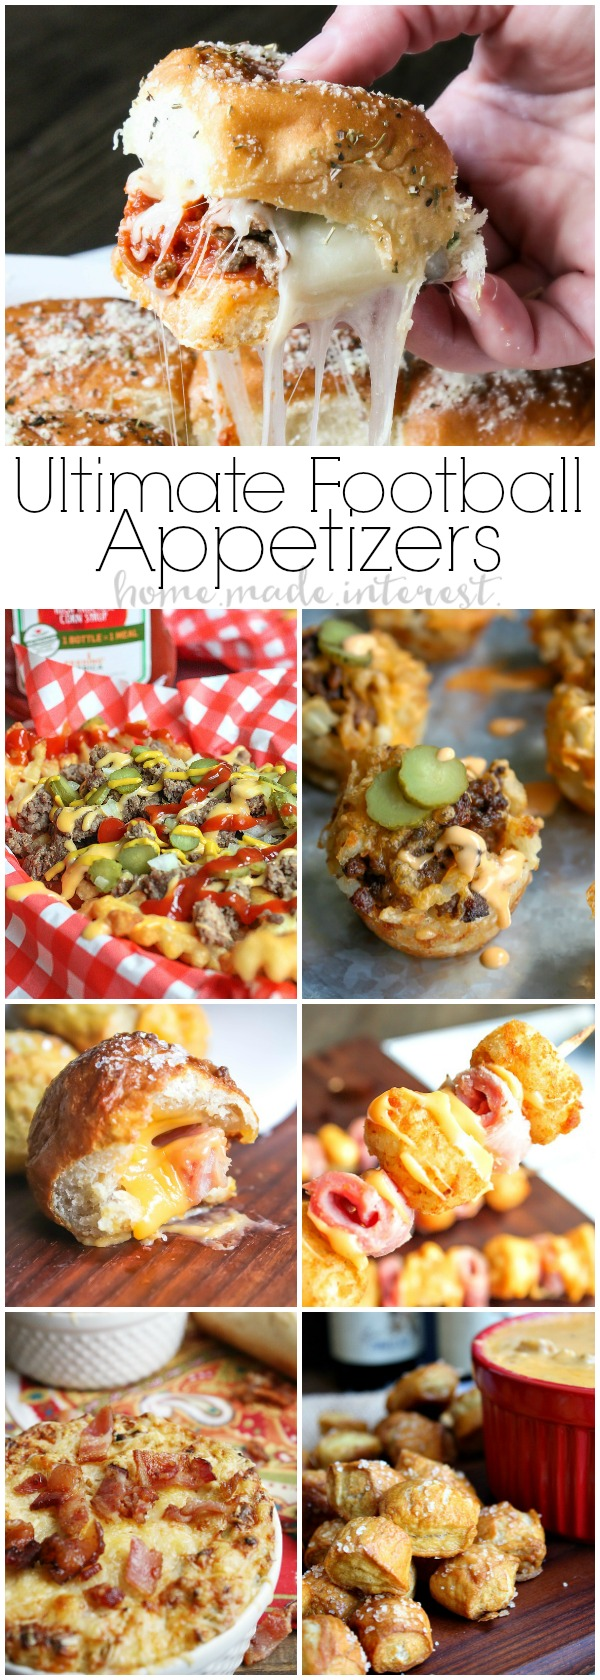 Easy Football Party Appetizers | Get ready for game day with these awesome easy football party appetizers. Whether you need some super bowl party recipes or you are just hosting a football party during the regular season you are going to need amazing appetizer recipes like easy slider recipes, tater tot appetizers, cheesy dip recipes. Host a great game day party with these easy game day appetizers!